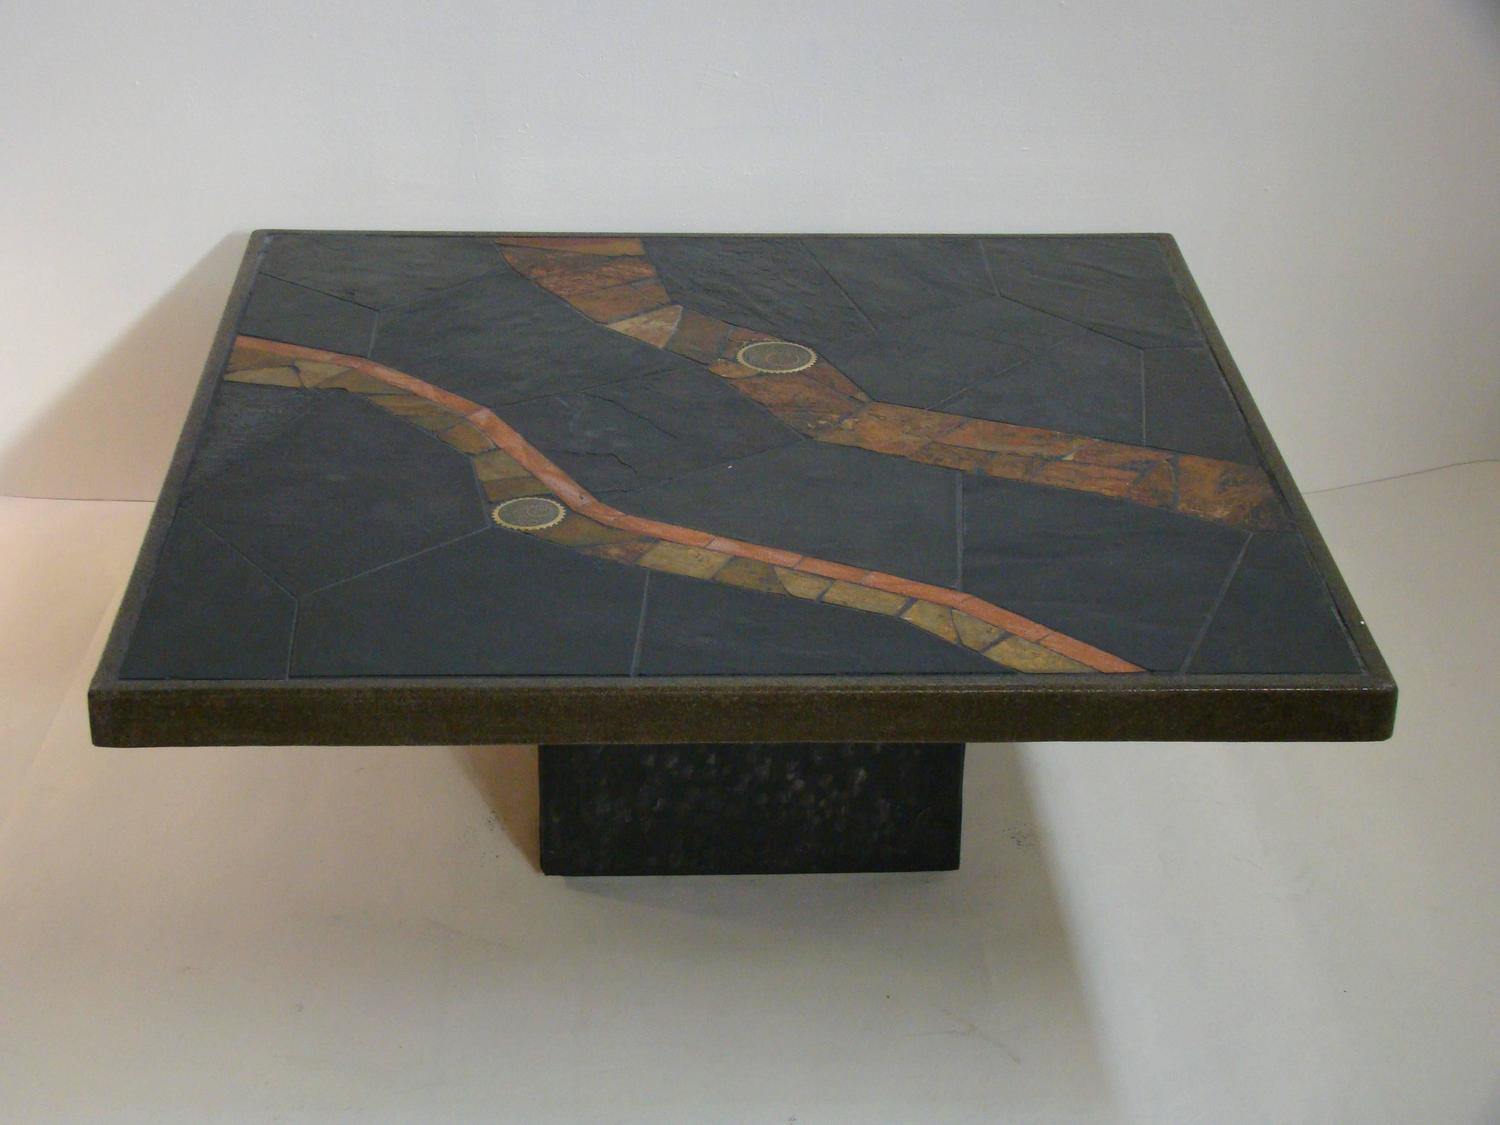 African Slate Mosaic Tile Coffee Table In The Manner Of Paul Kingma At